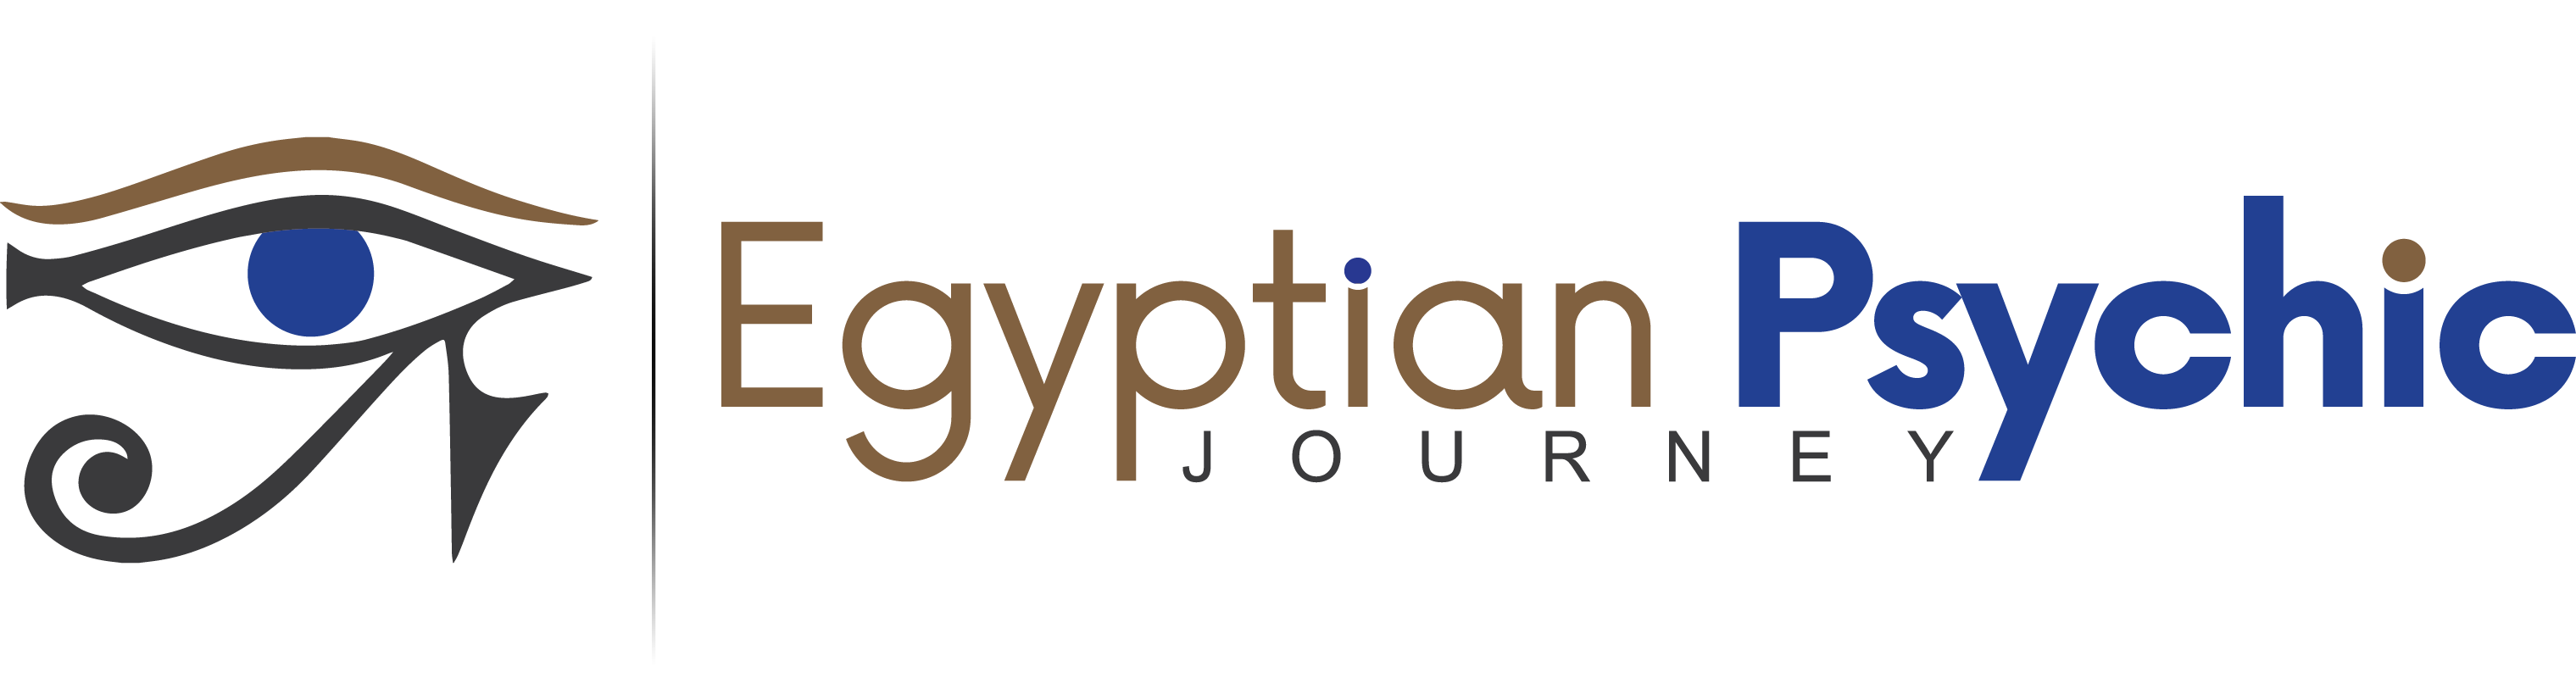 Egyptian Psychic Journey